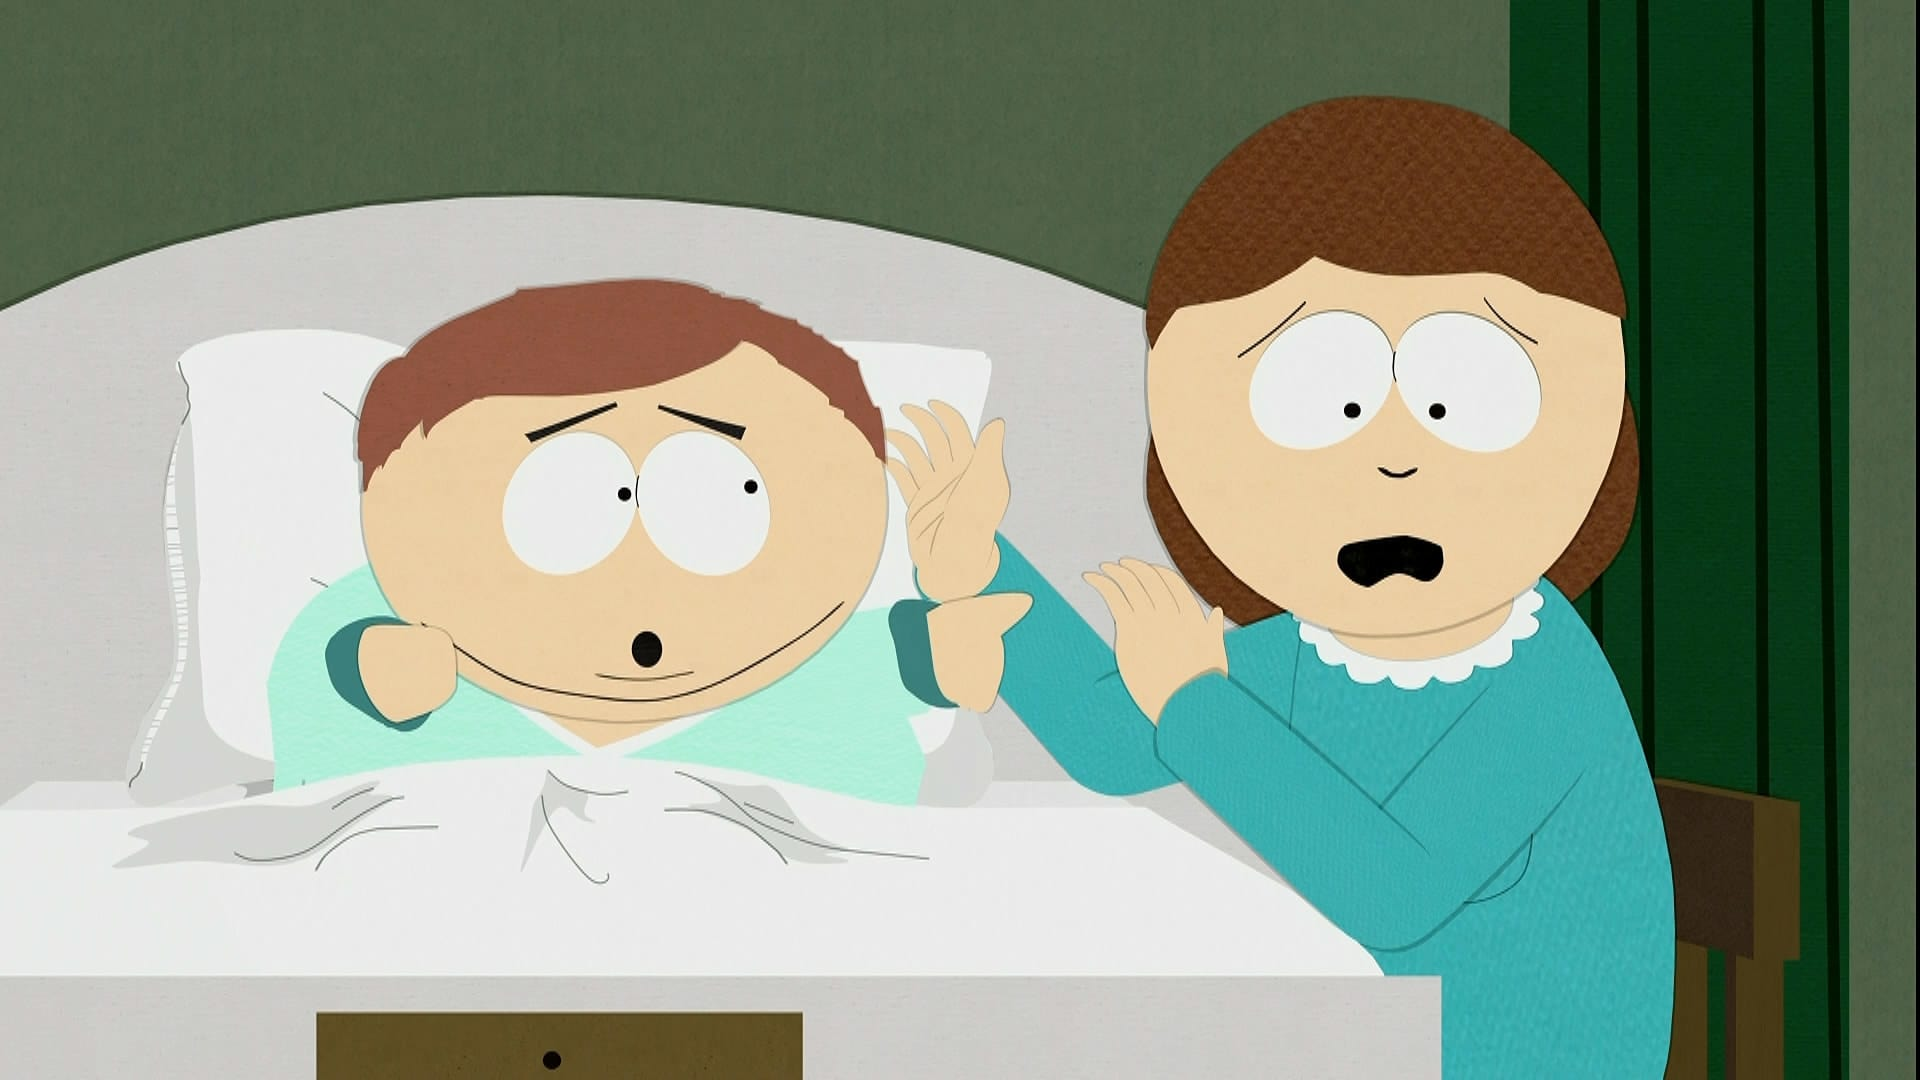 South Park - Season 12 Episode 1 : Tonsil Trouble